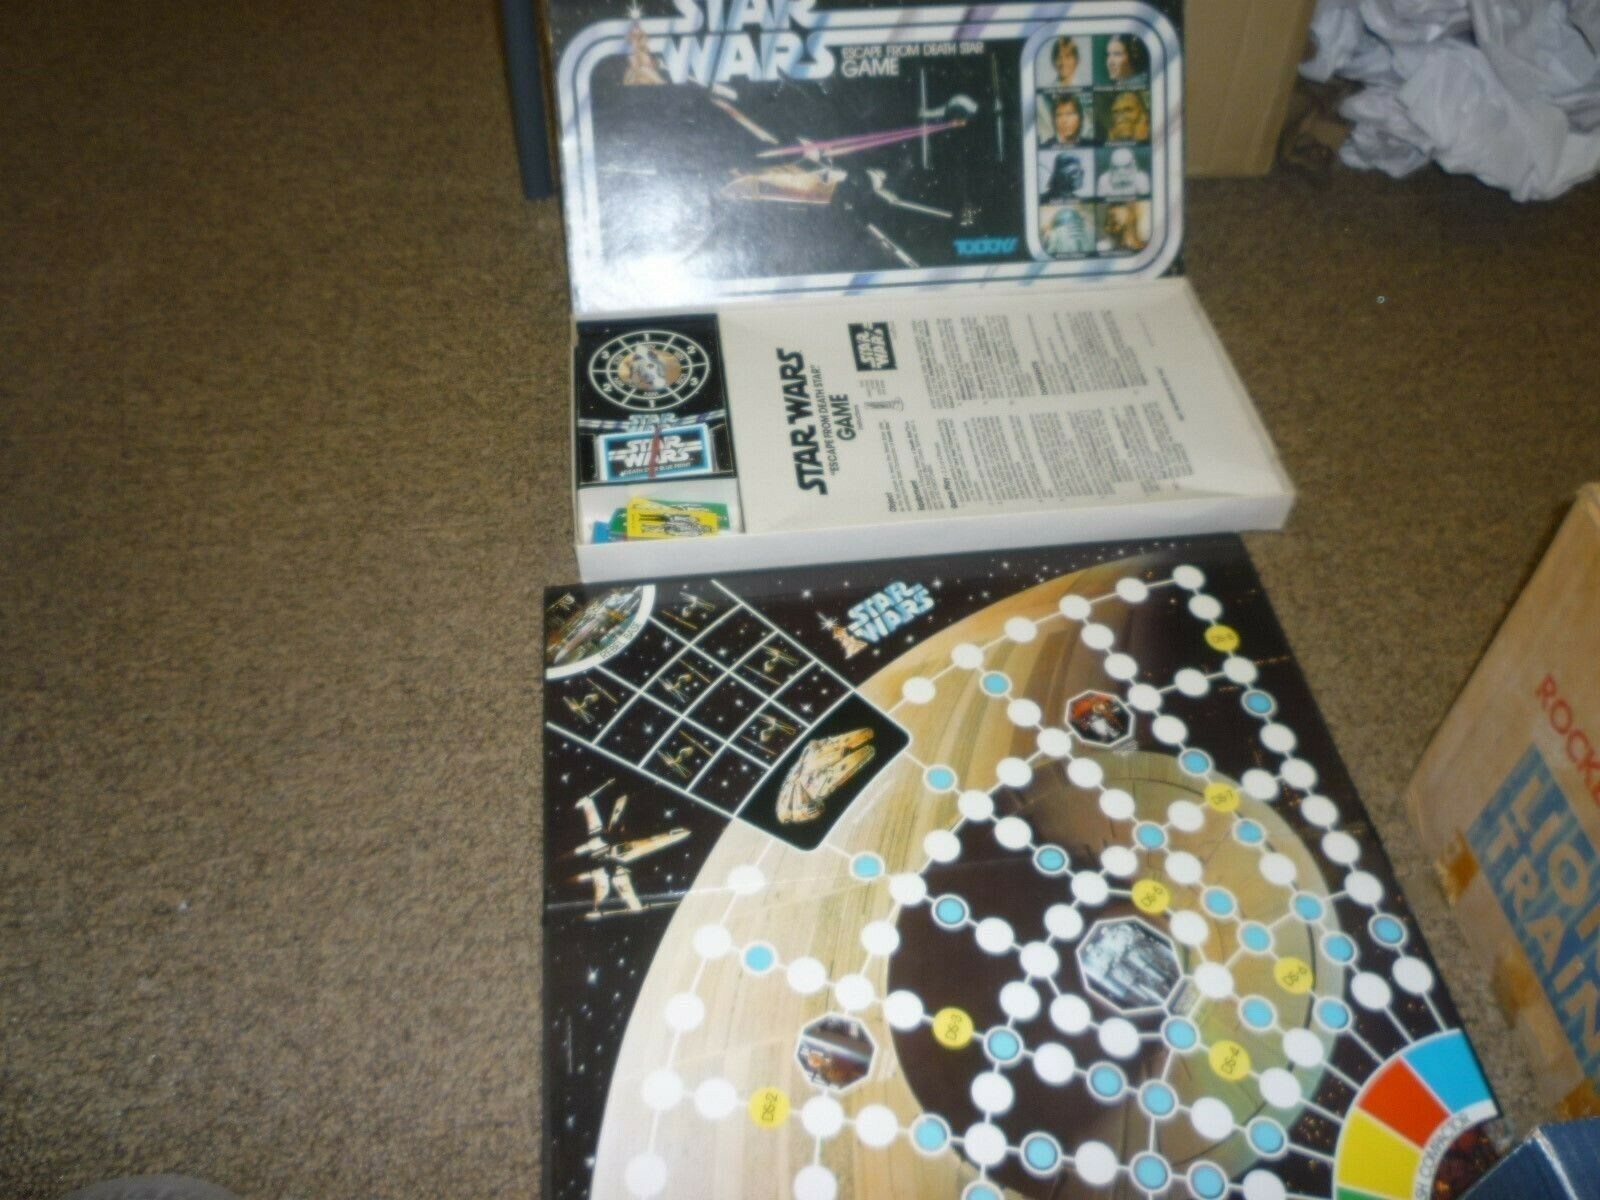 Vintage Star Wars Escape the the the Death Star Board Game Rare Toltoys Version Complete db885d